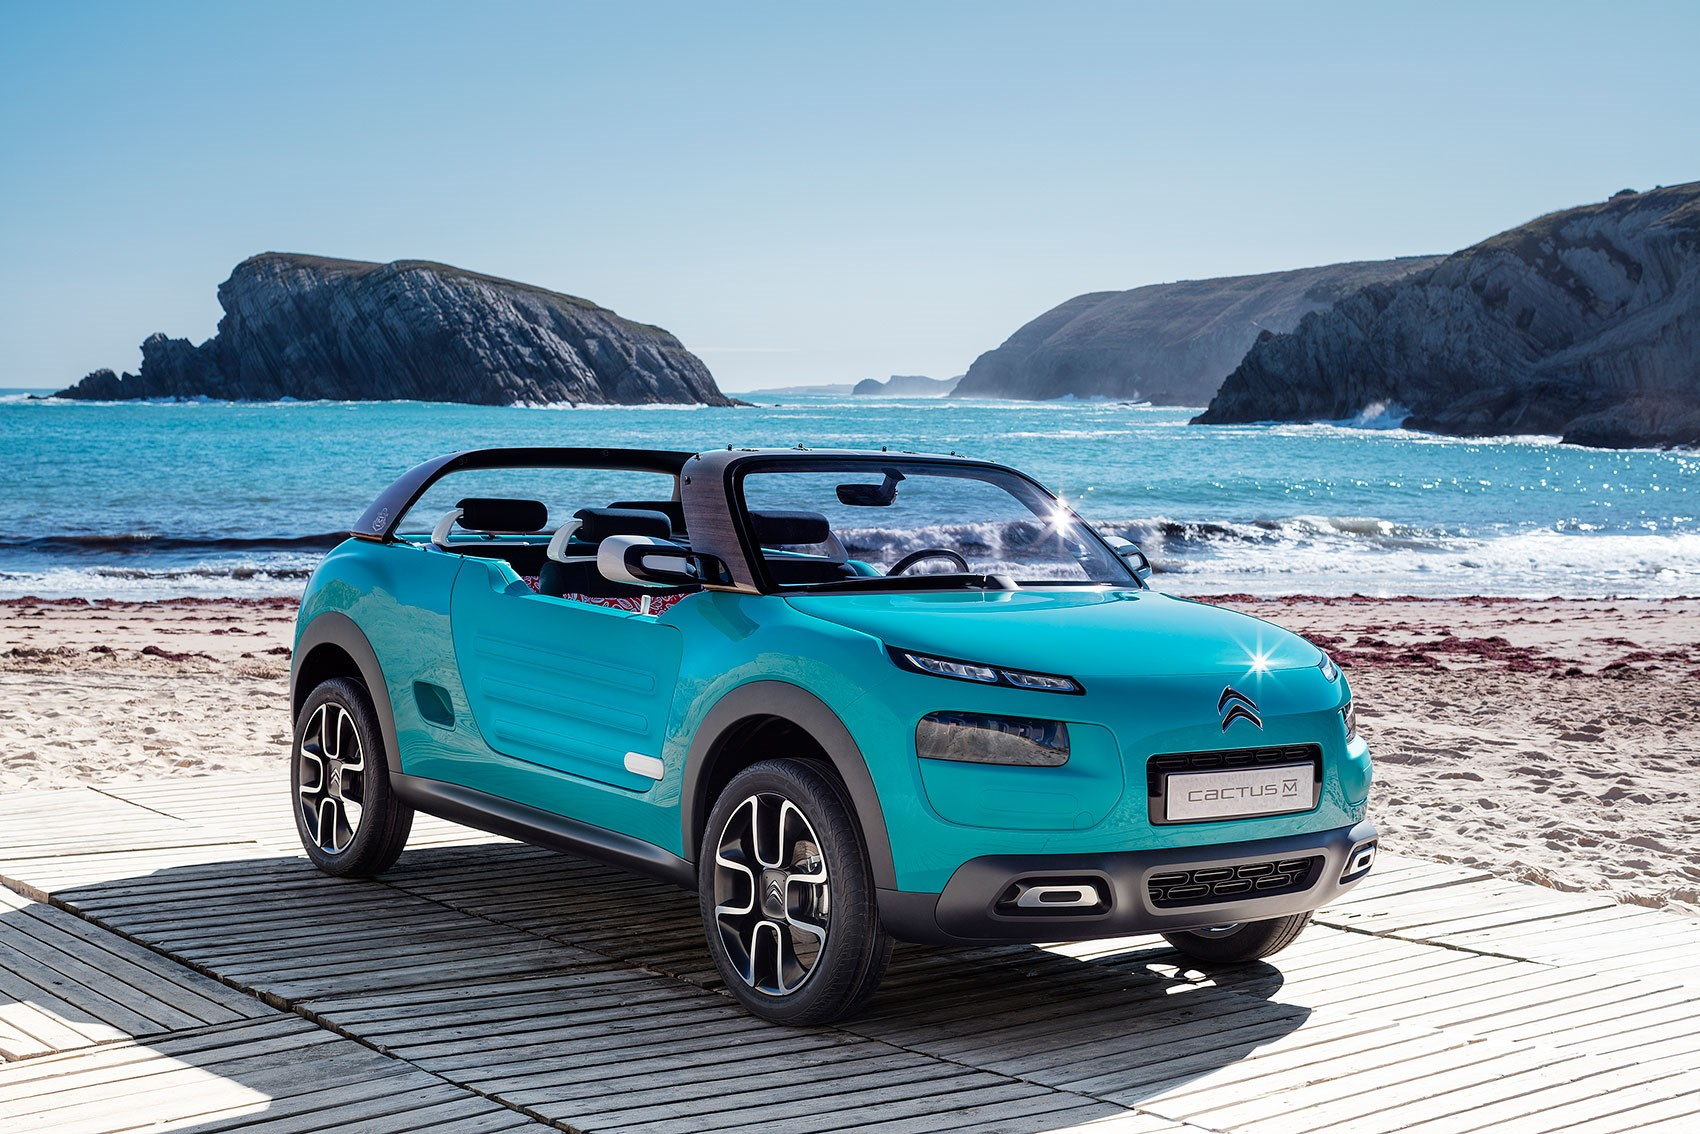 citroen cactus m concept car channels the m hari buggy spirit by car magazine. Black Bedroom Furniture Sets. Home Design Ideas